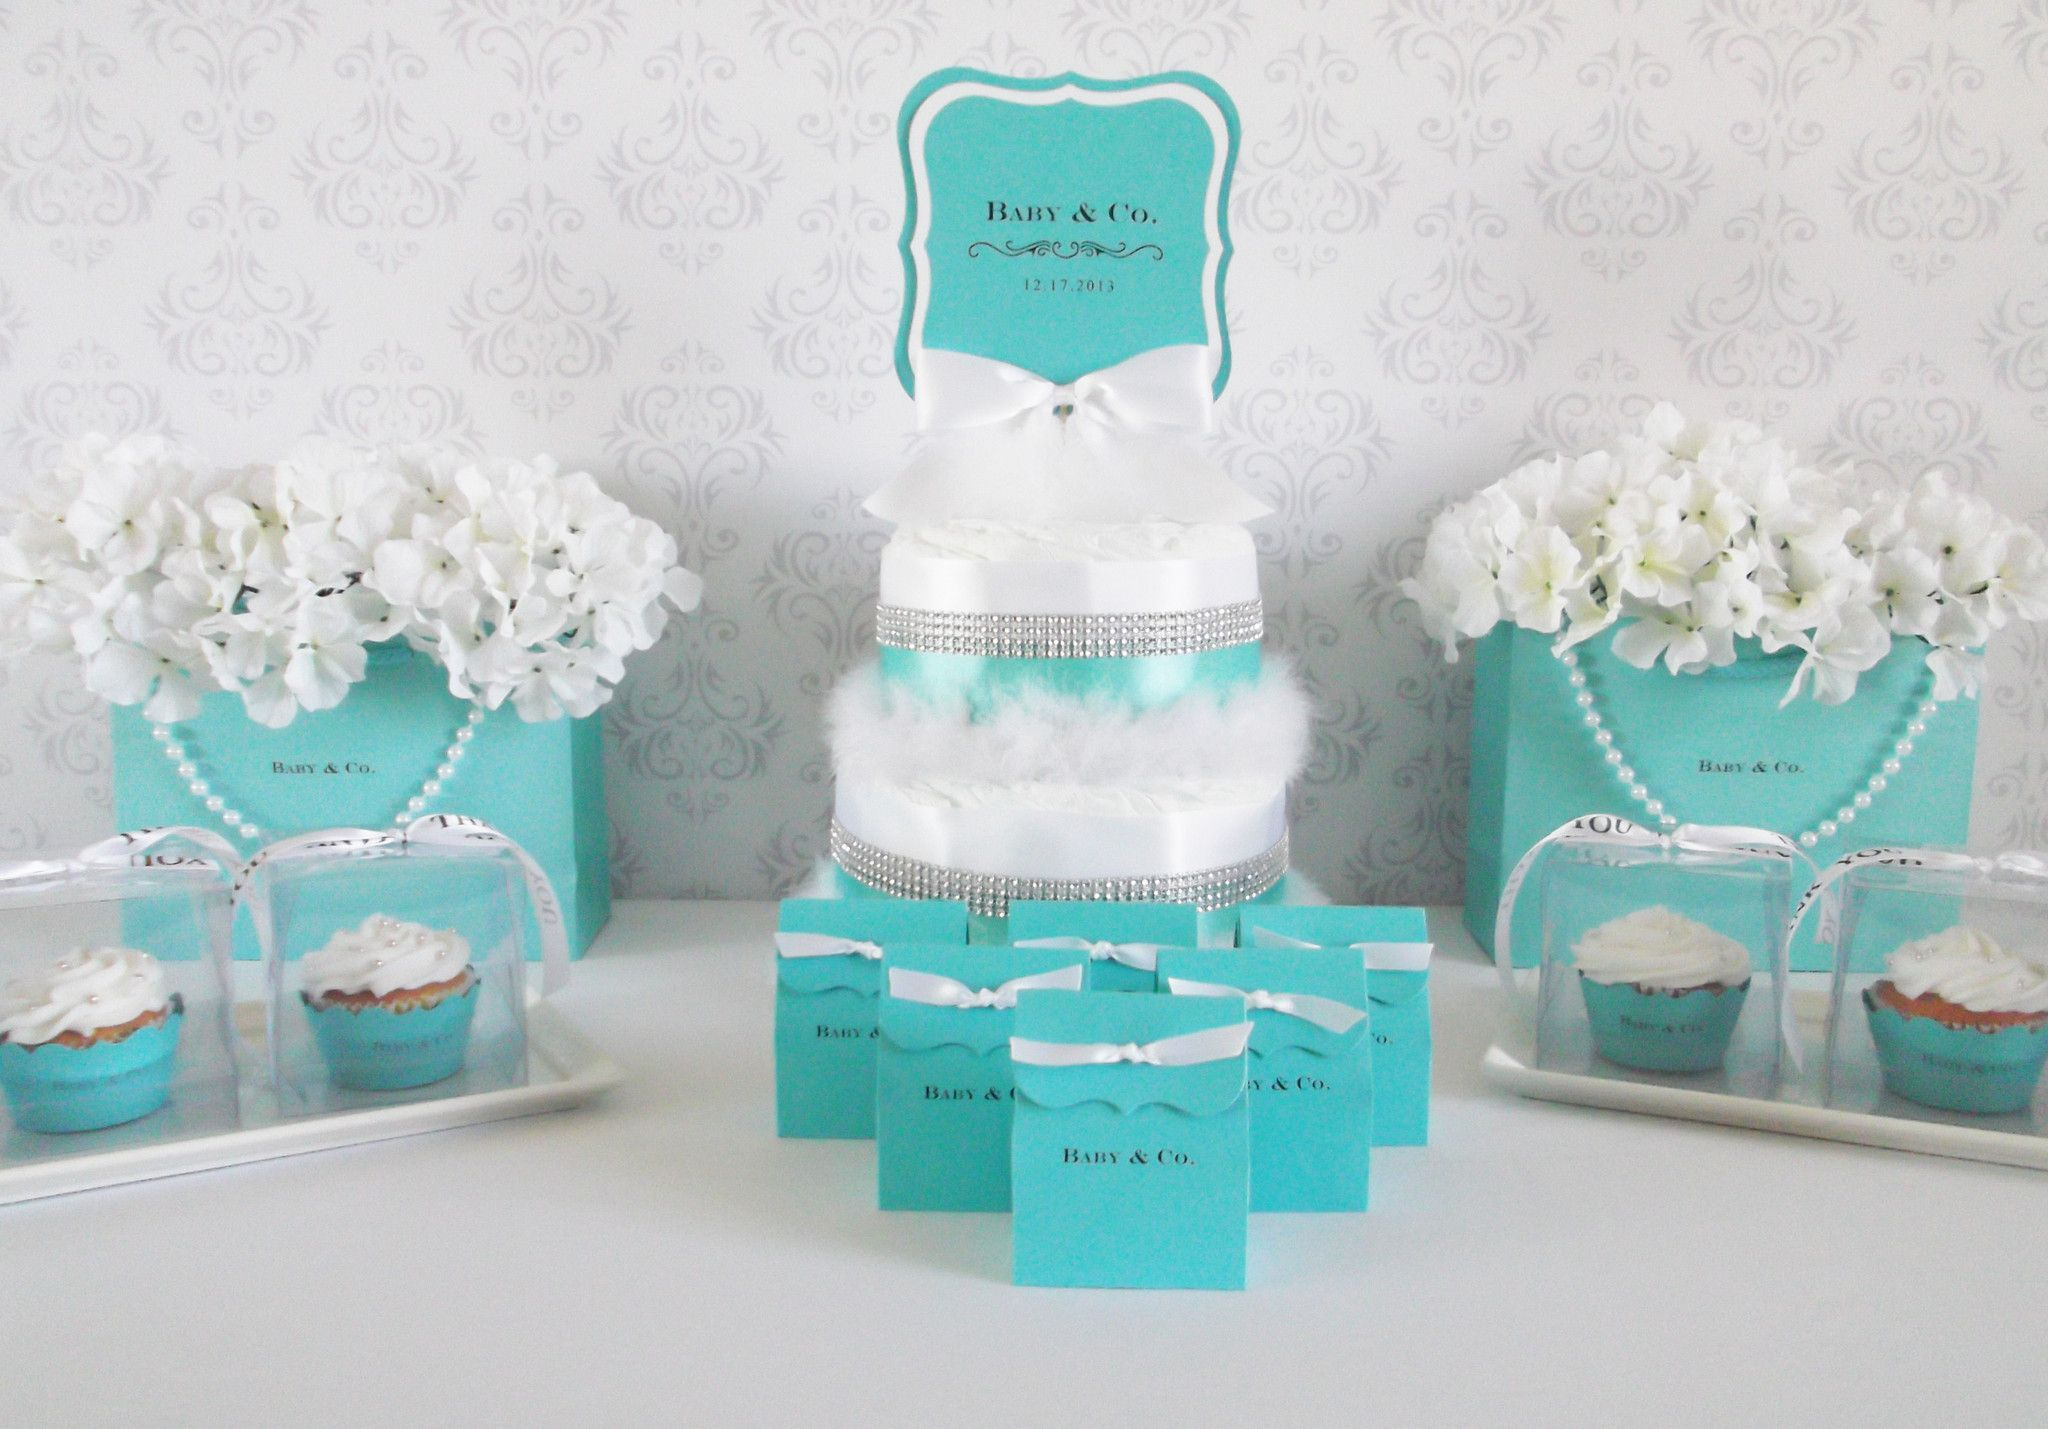 Baby & Co. Gift Bags with Pearl Strands S/2 | Tiffany, Centrepieces ...